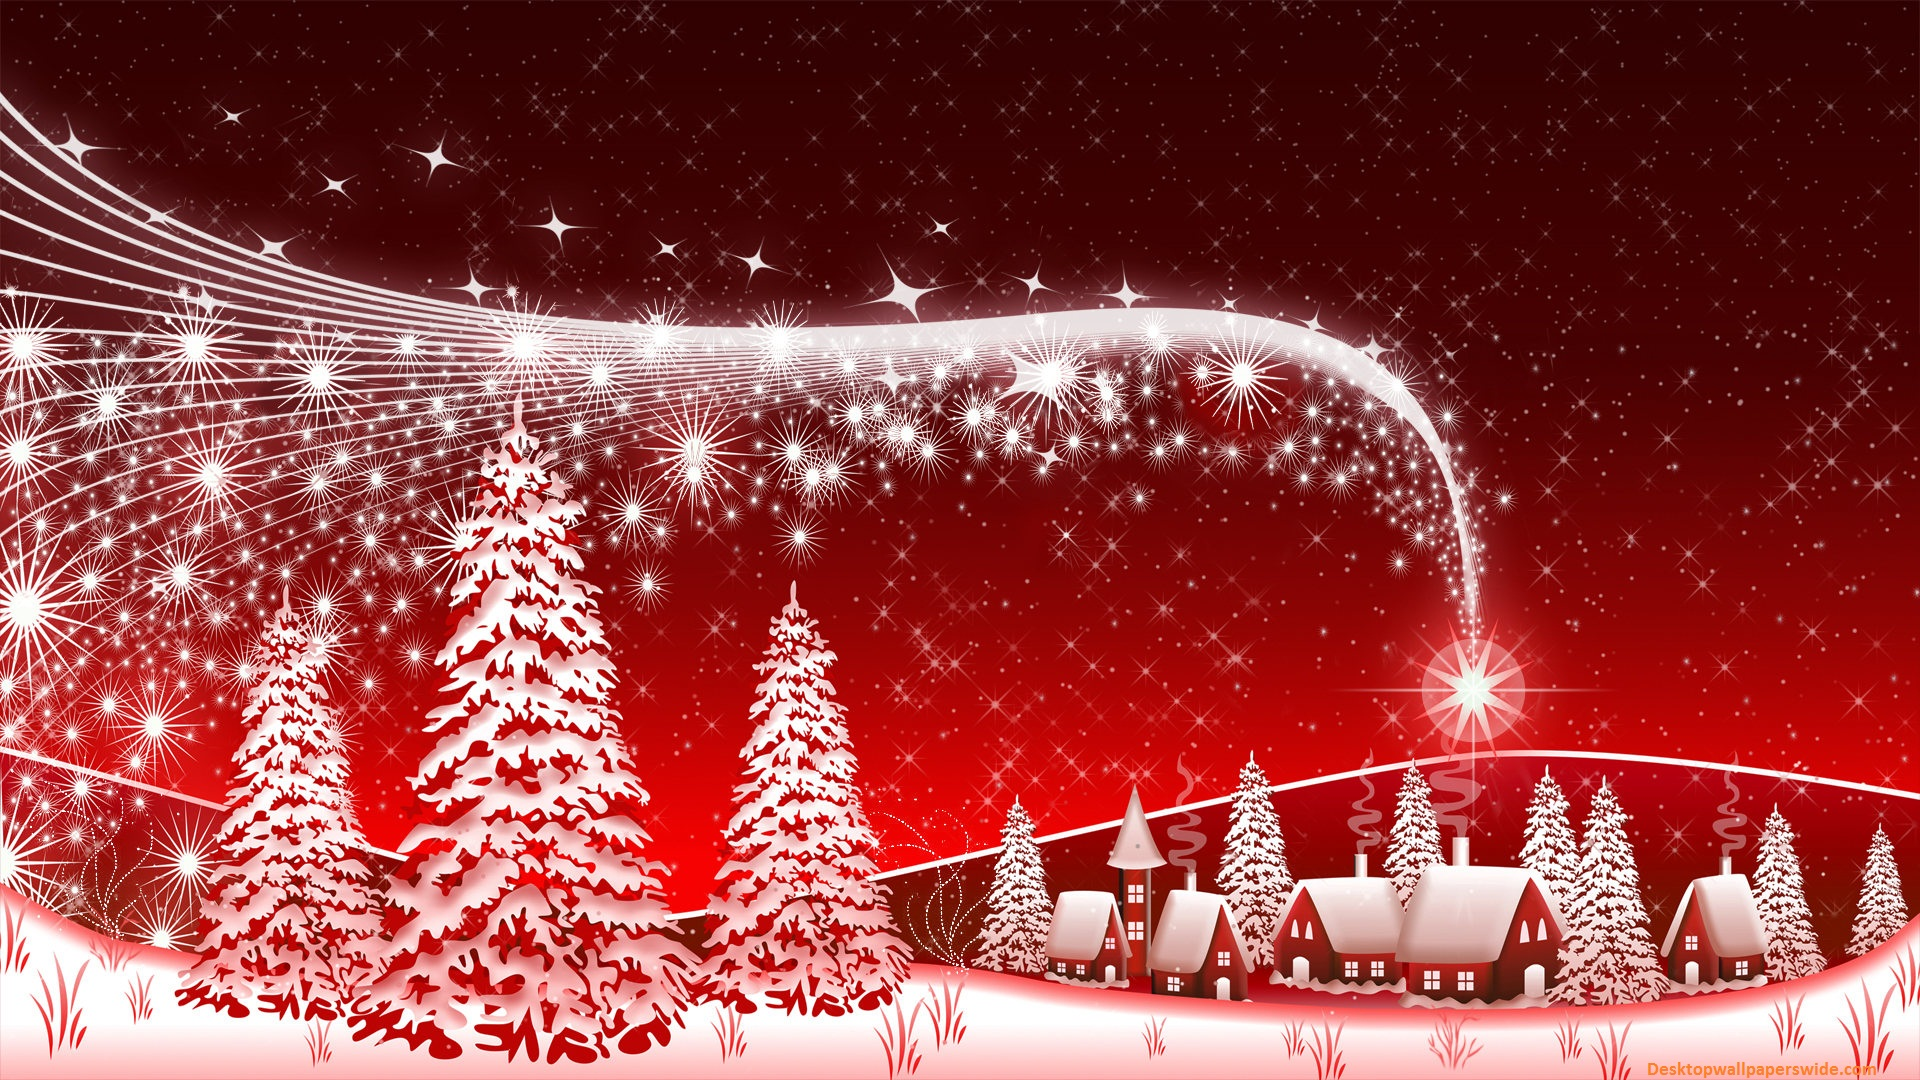 These desktop wallpapers are high definition and available in wide range of sizes and resolutions. Download Christmas Desktop HD Wallpapers absolutely free ...